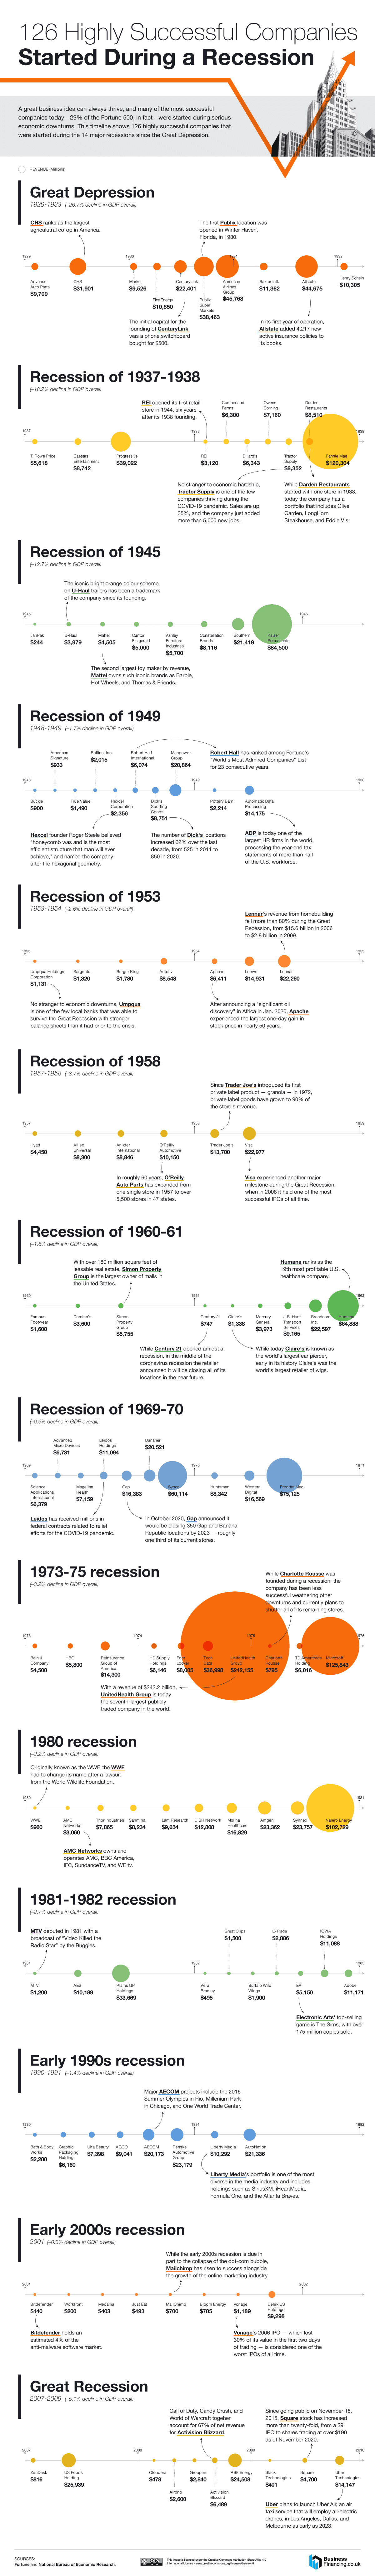 126 Highly Successful Companies Started During a Recession